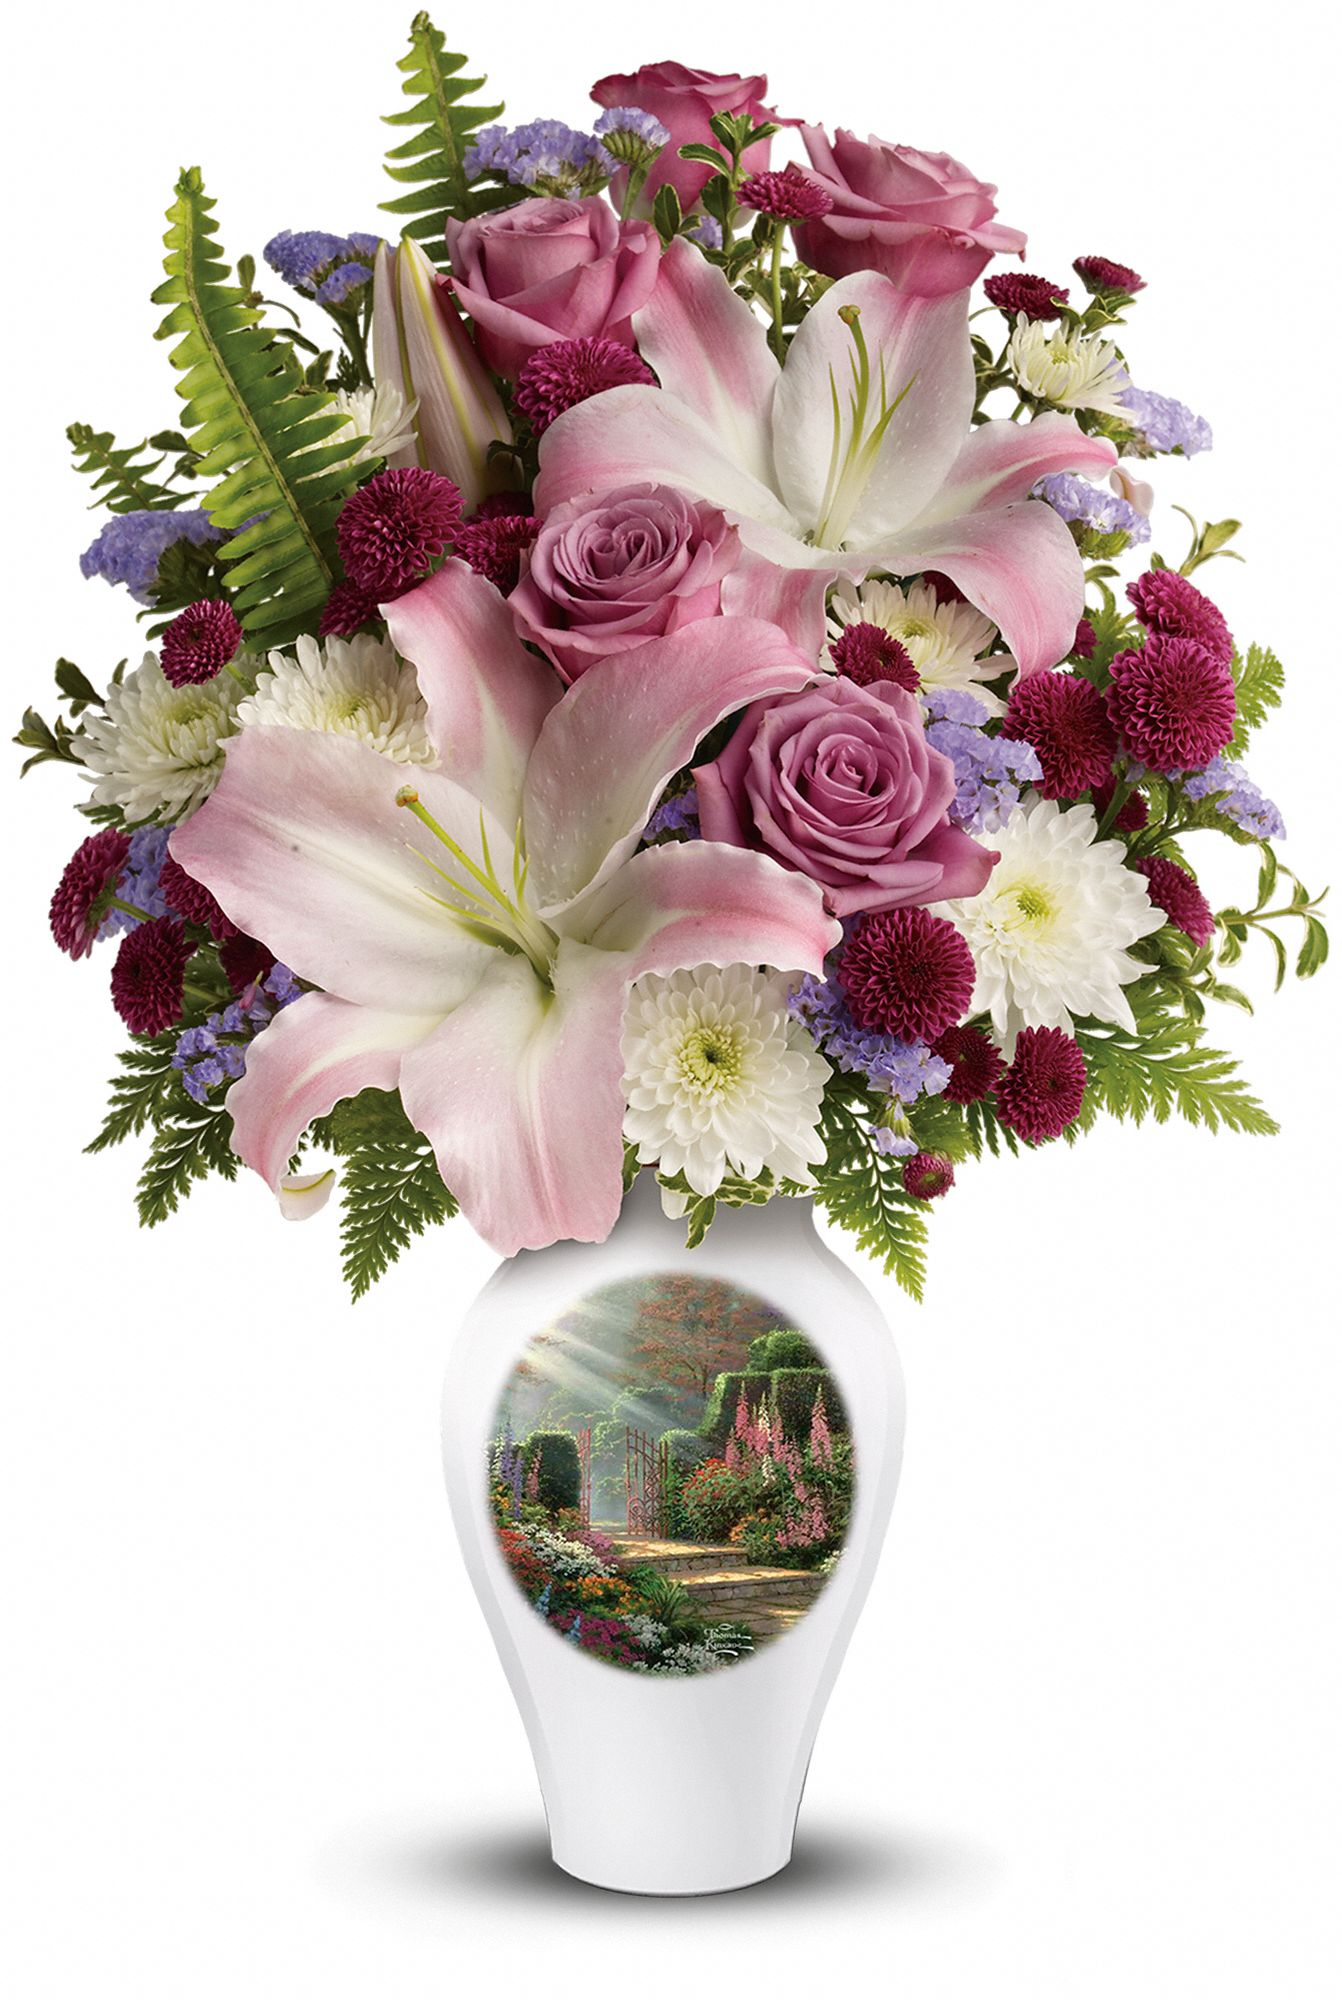 Thomas Kinkade's Moment of Grace Bouquet